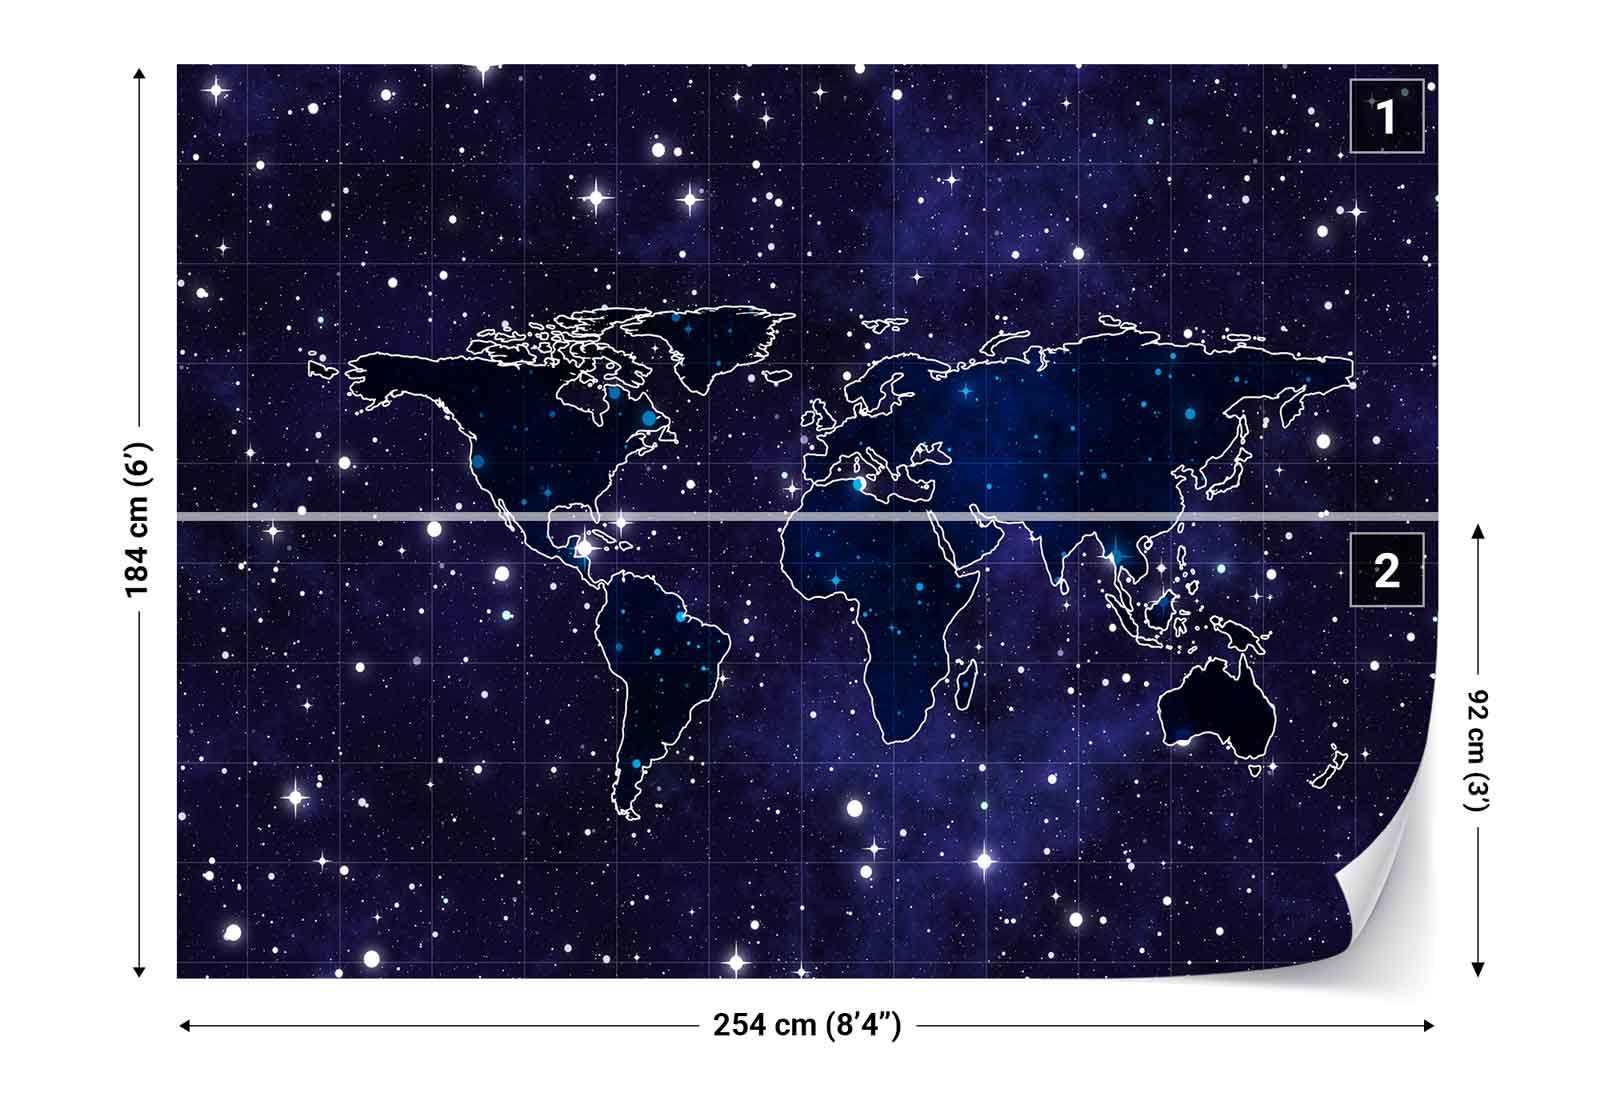 World map night sky background photo wallpaper wall mural fw 1134 resntentobalflowflowcomponenttechnicalissues gumiabroncs Image collections